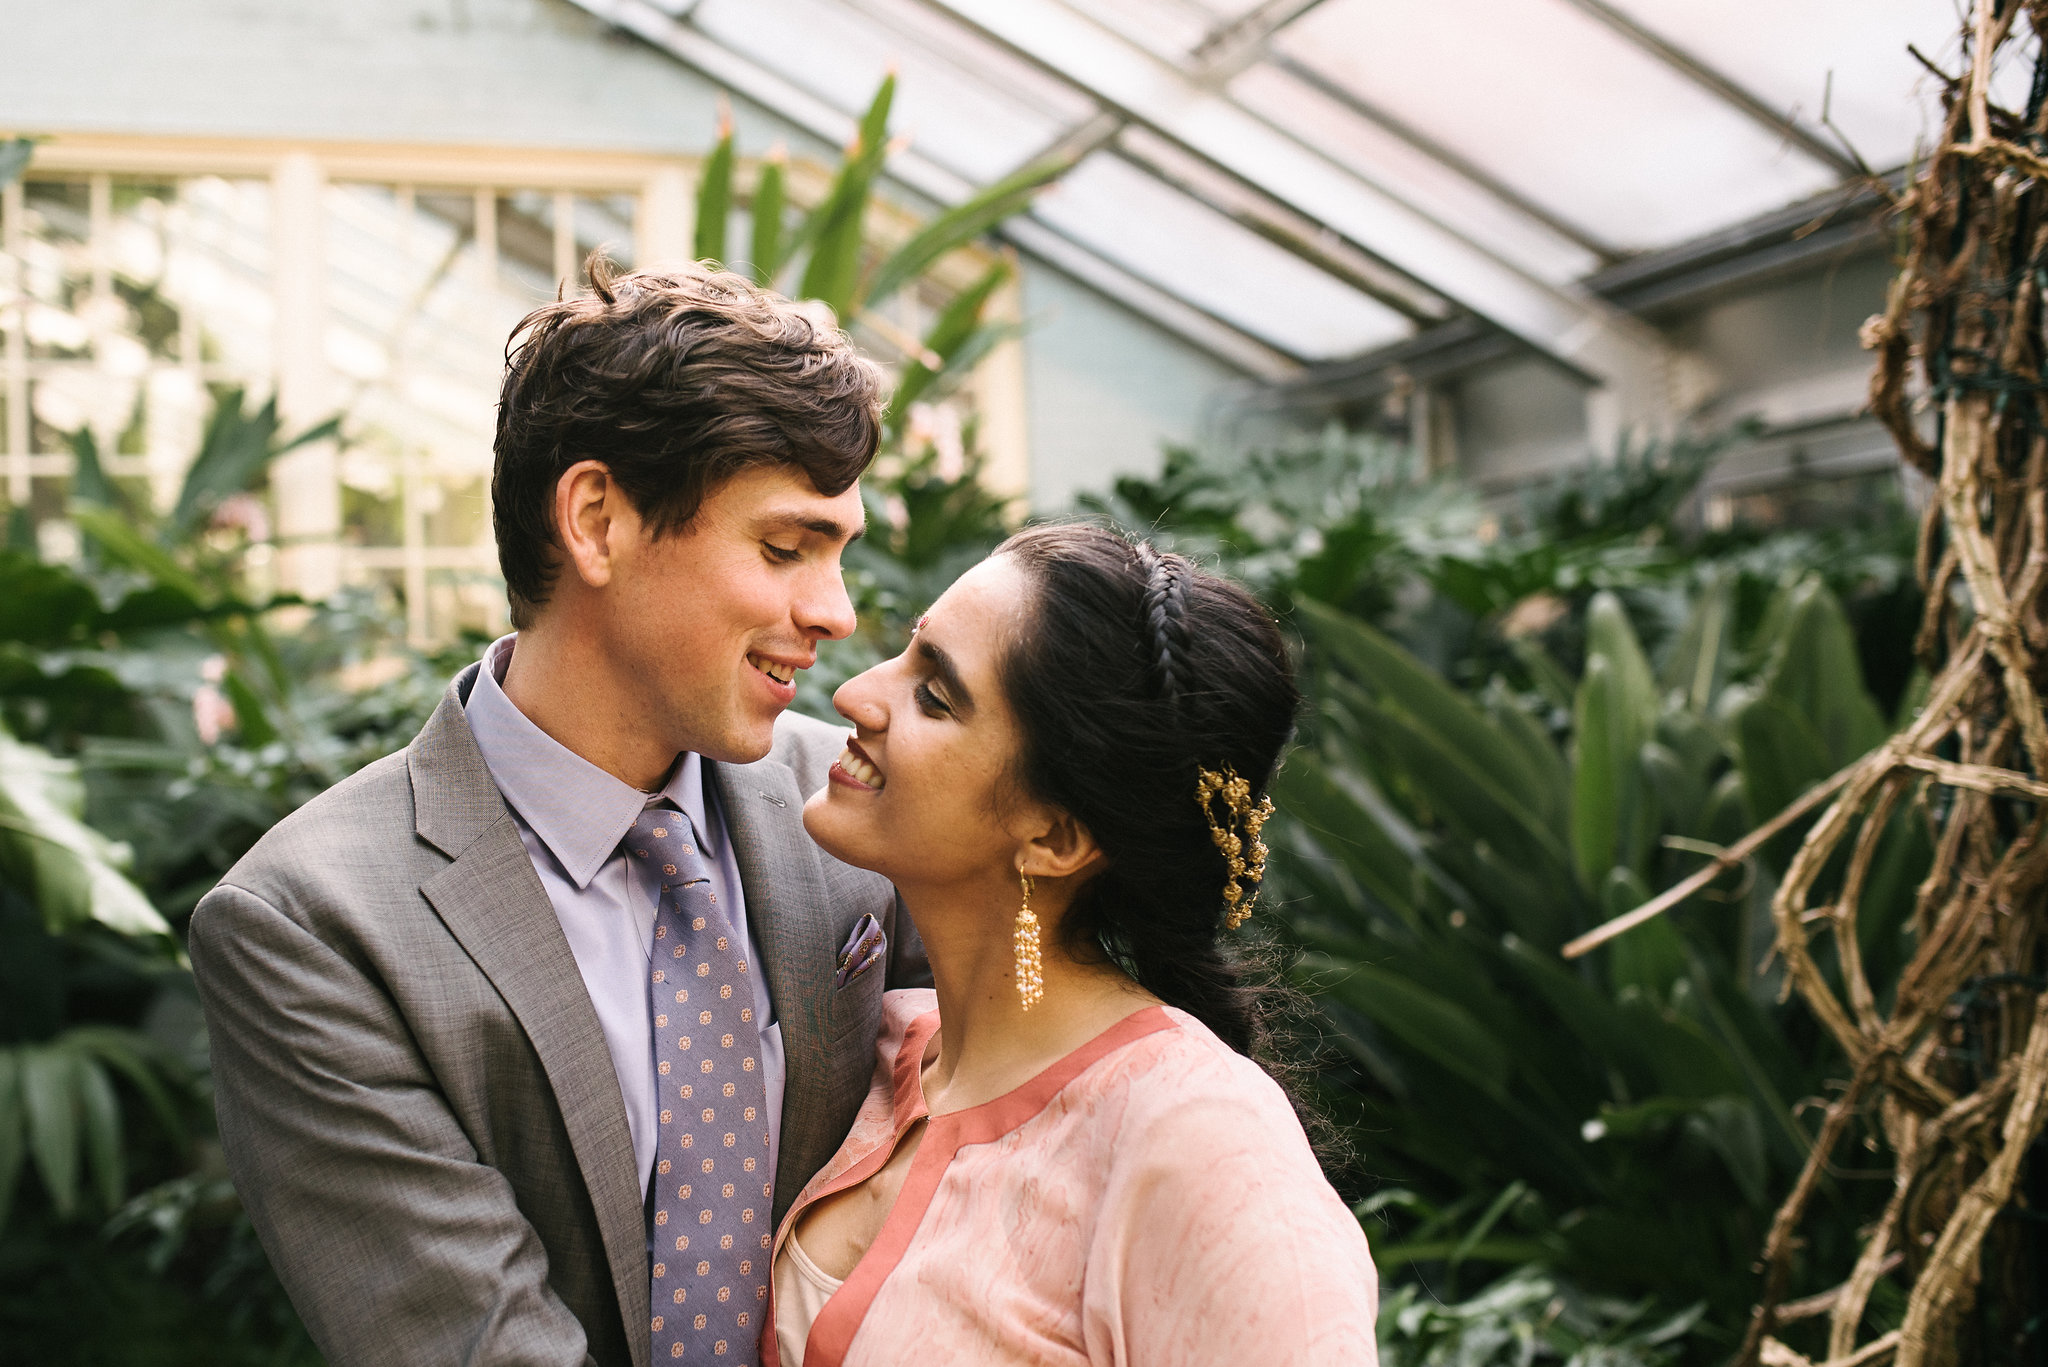 Elopement, Weekday Wedding, Baltimore, Rawlings Conservatory, Greenhouse, Maryland Wedding Photographer, Indian American, Nature, Romantic, Garden, Sweet Moments, Bride and Groom Portrait